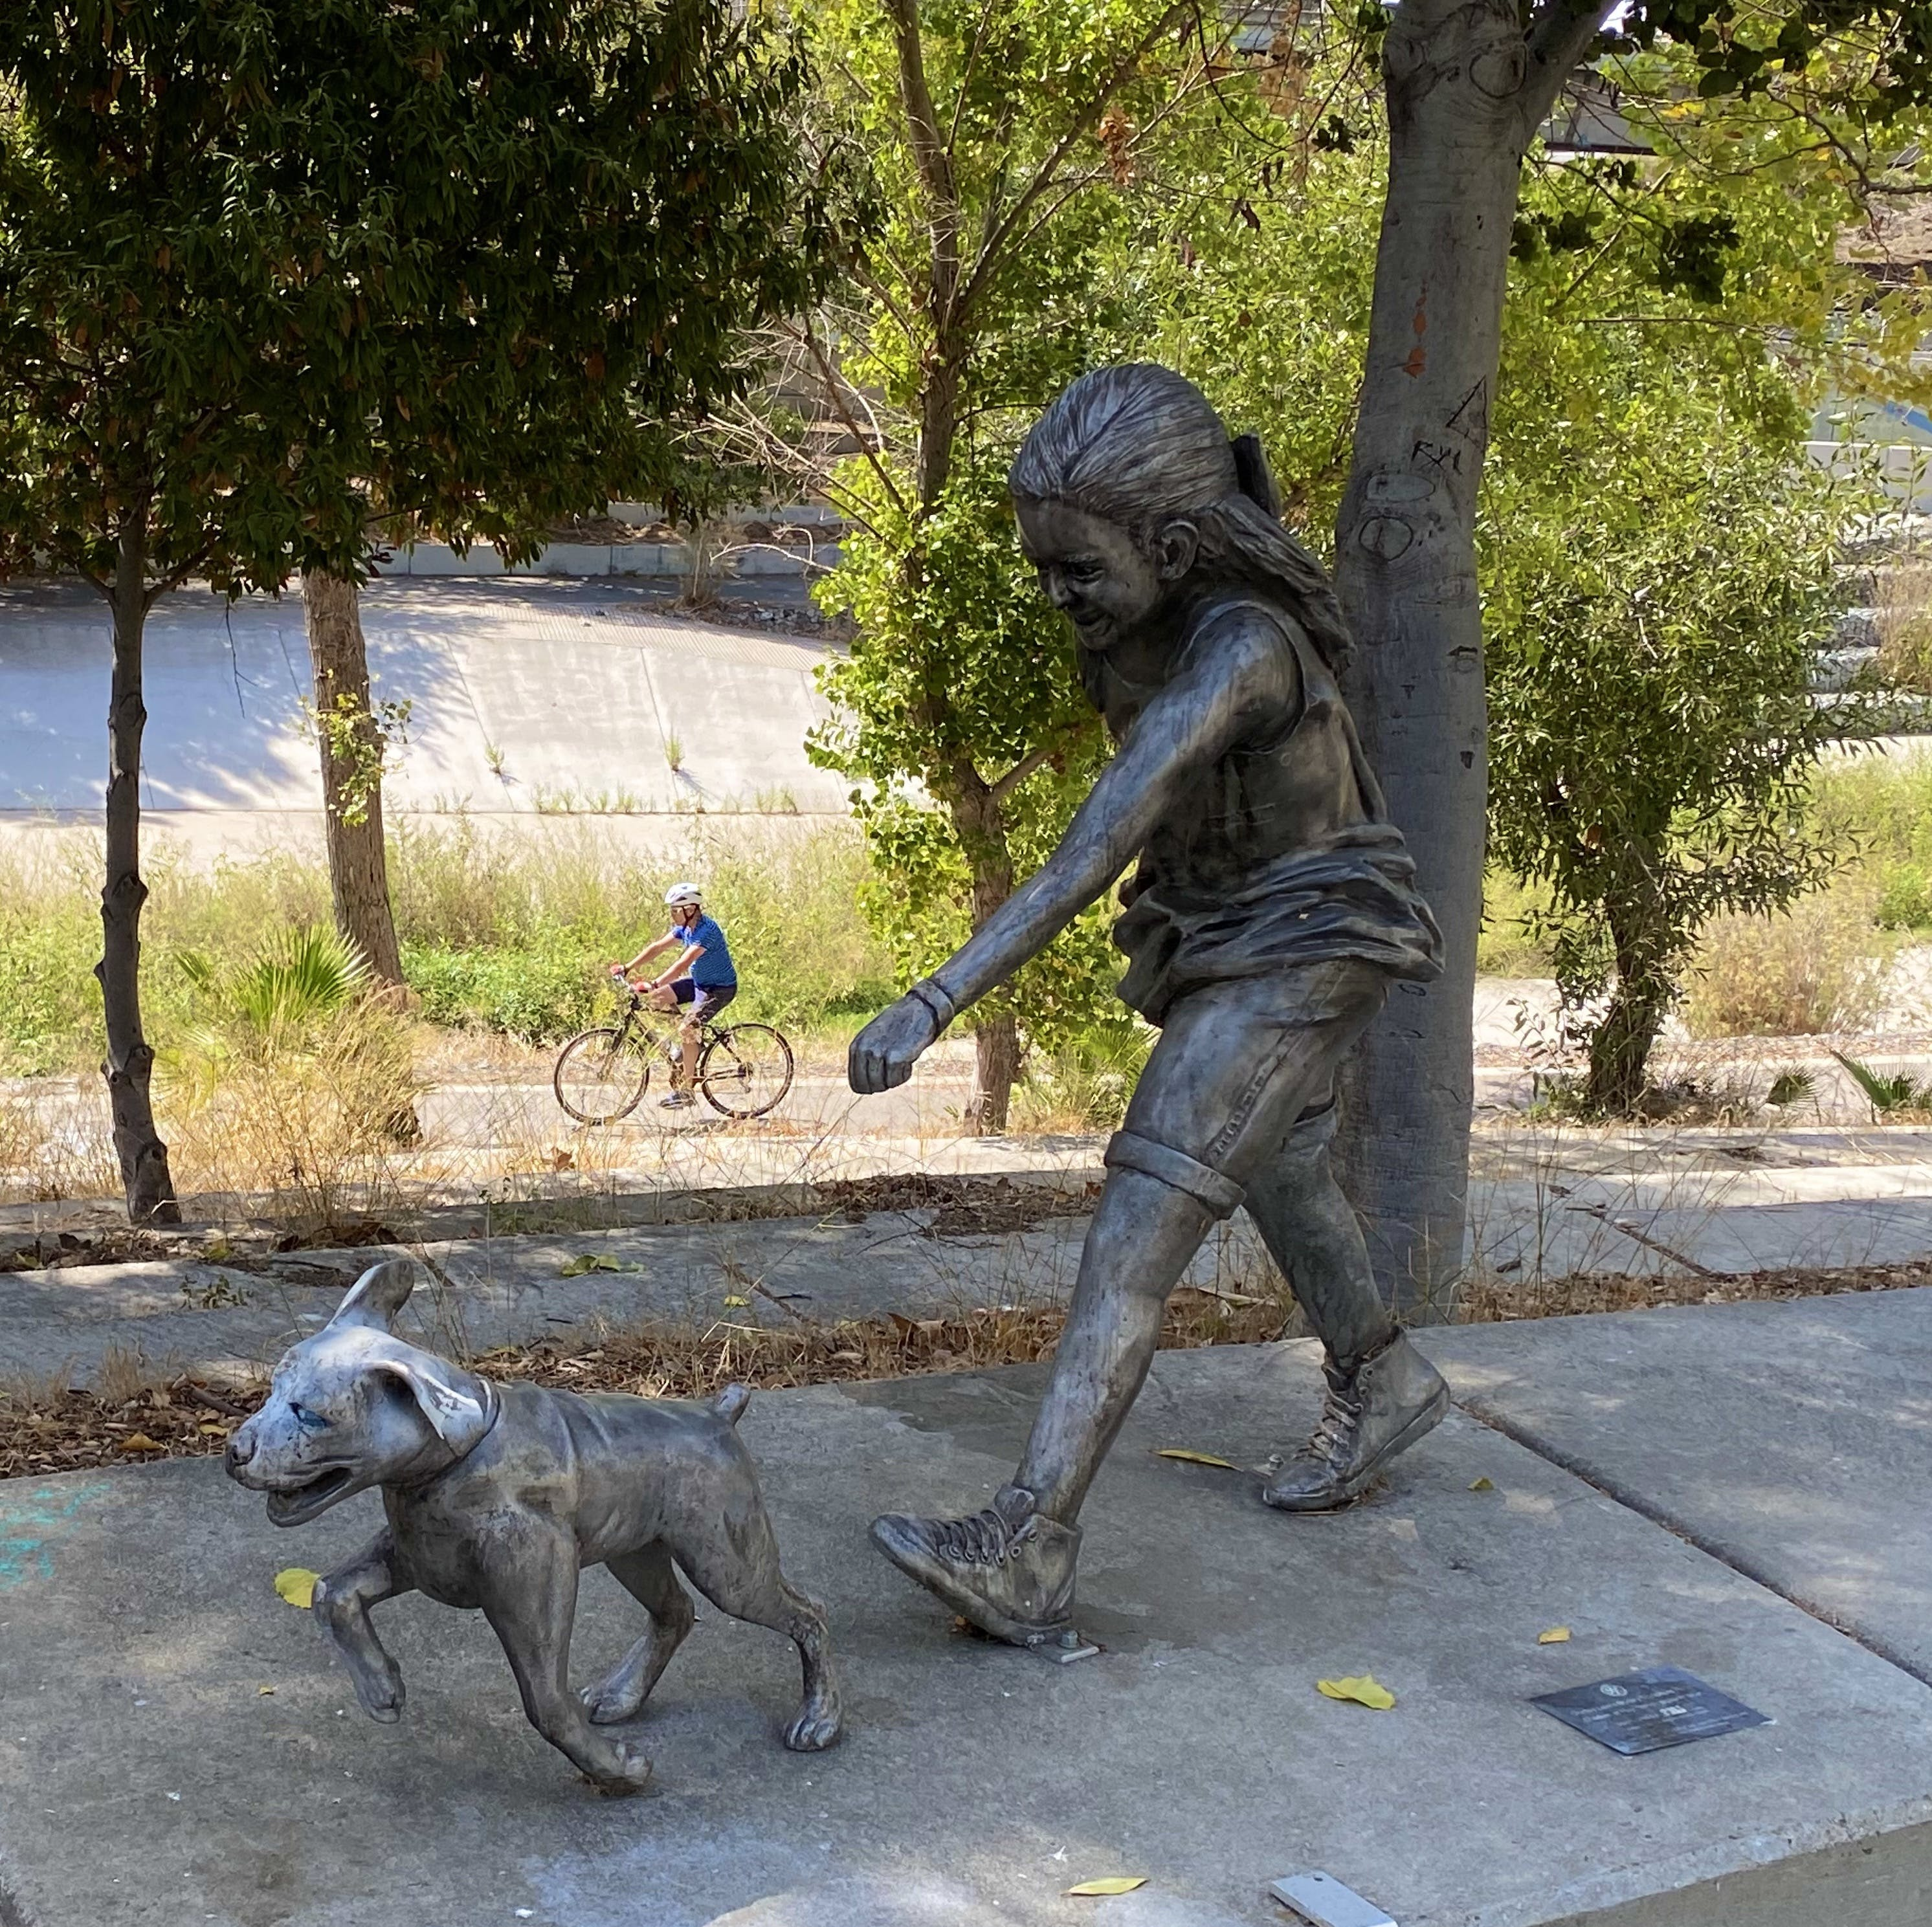 sculpture of a young girl walking her dog on a sidewalk with bike riders on the bike path below in San Jose at Guadalupe River Trail